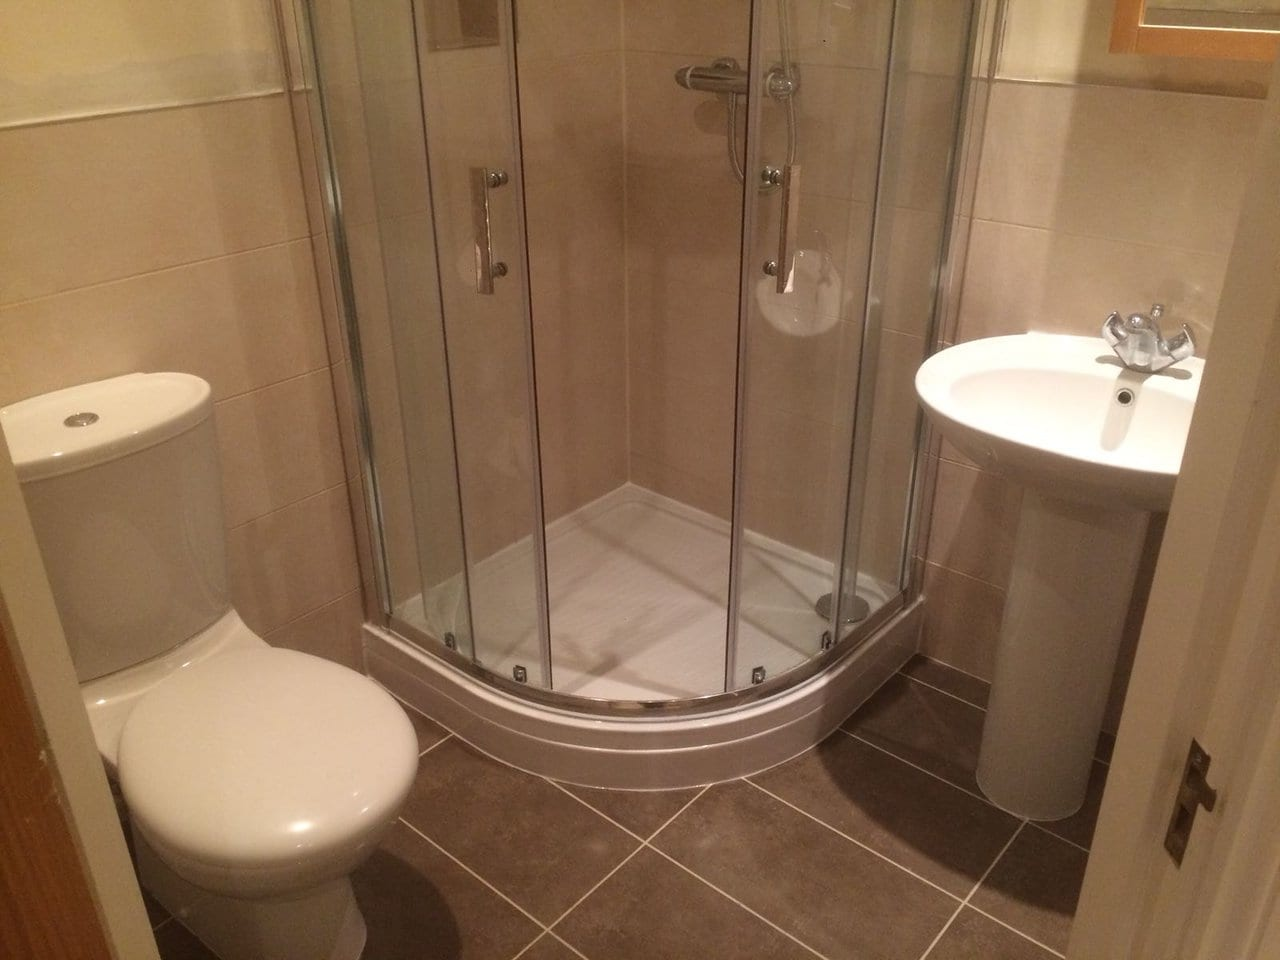 Small Bathroom with Toilet, Shower and Basin